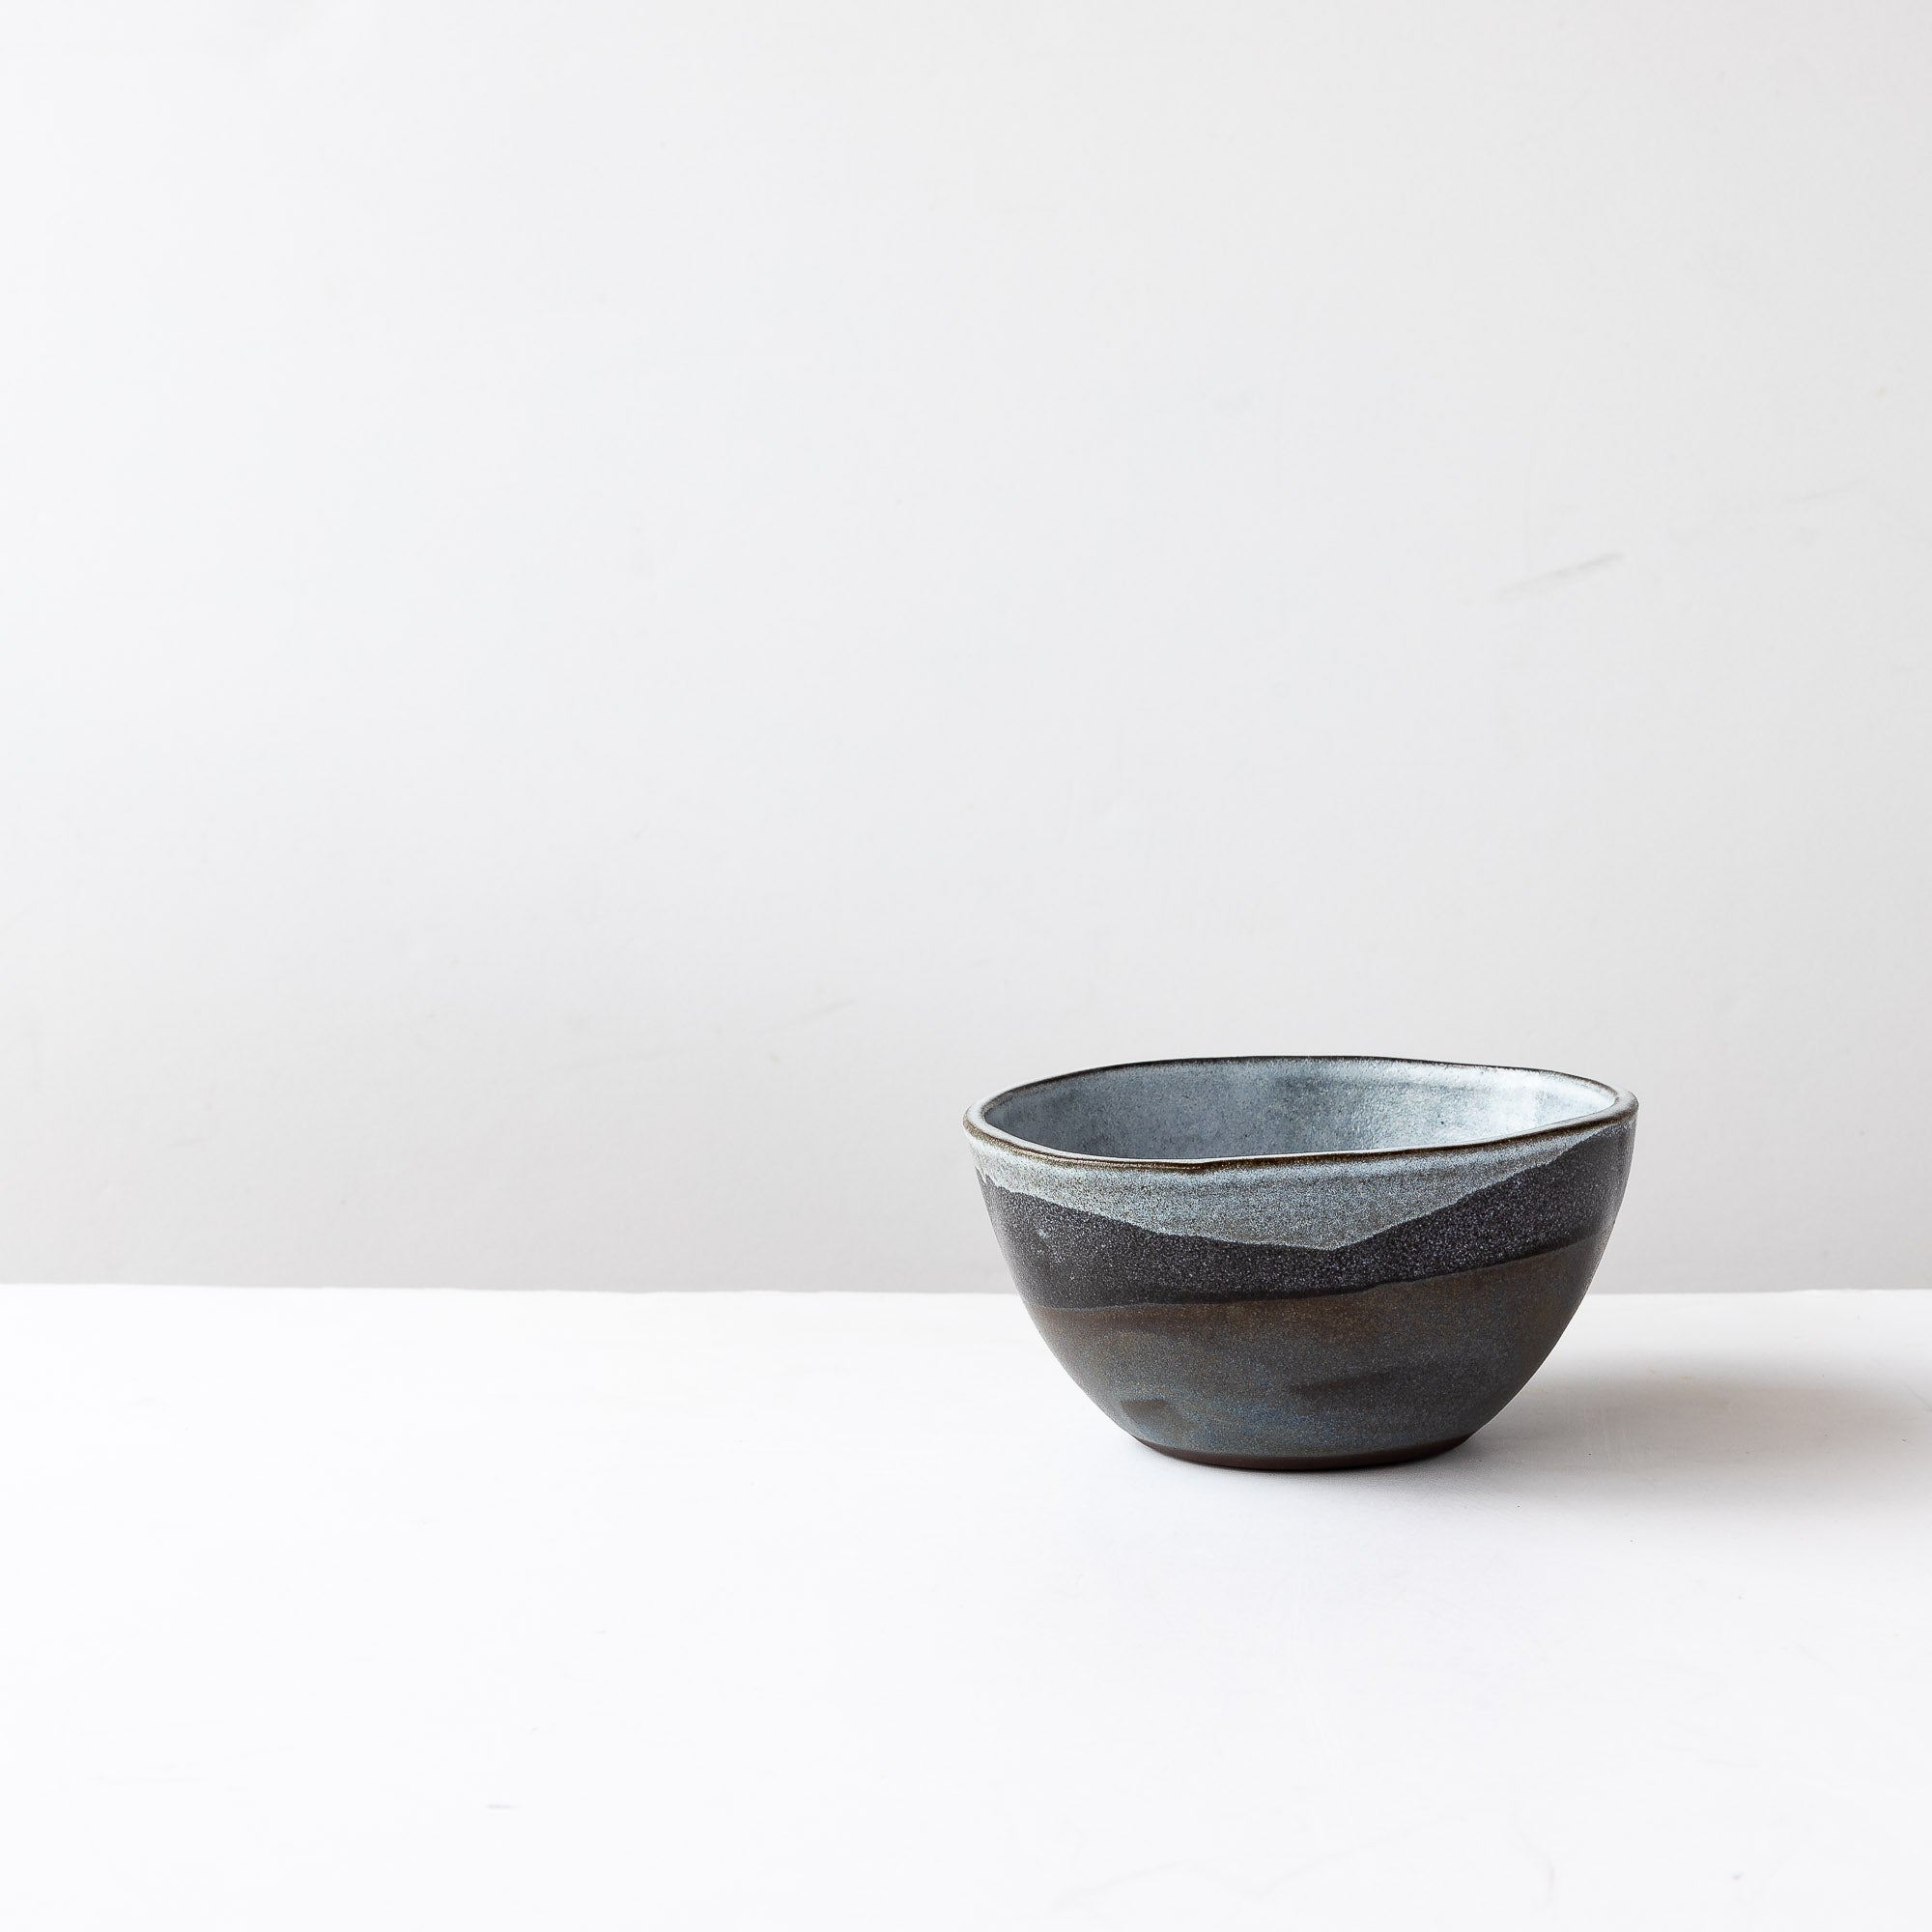 Handmade Stoneware Breakfast Bowl - Mountain Collection - Sold by Chic & Basta